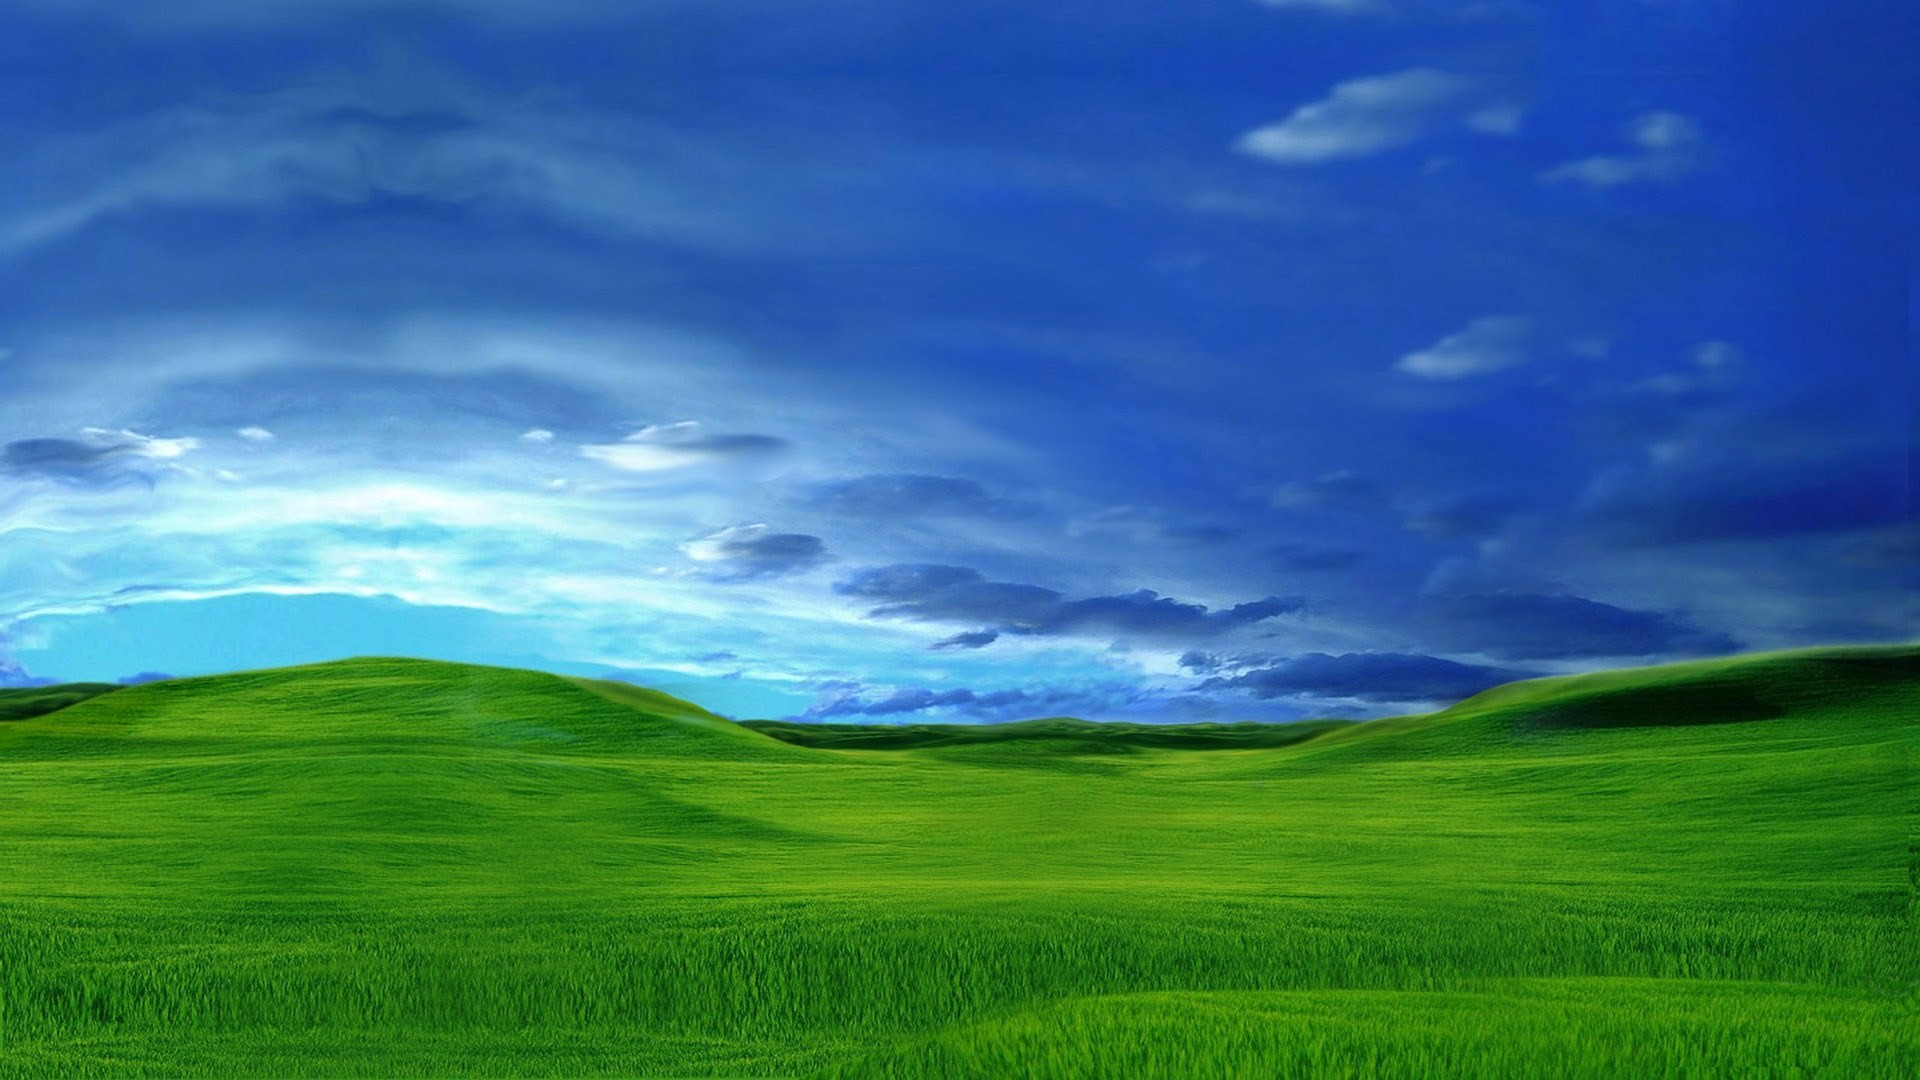 1920x1080 For 1080p Widescreen LCD Monitor - HD beautiful landscape 第 .